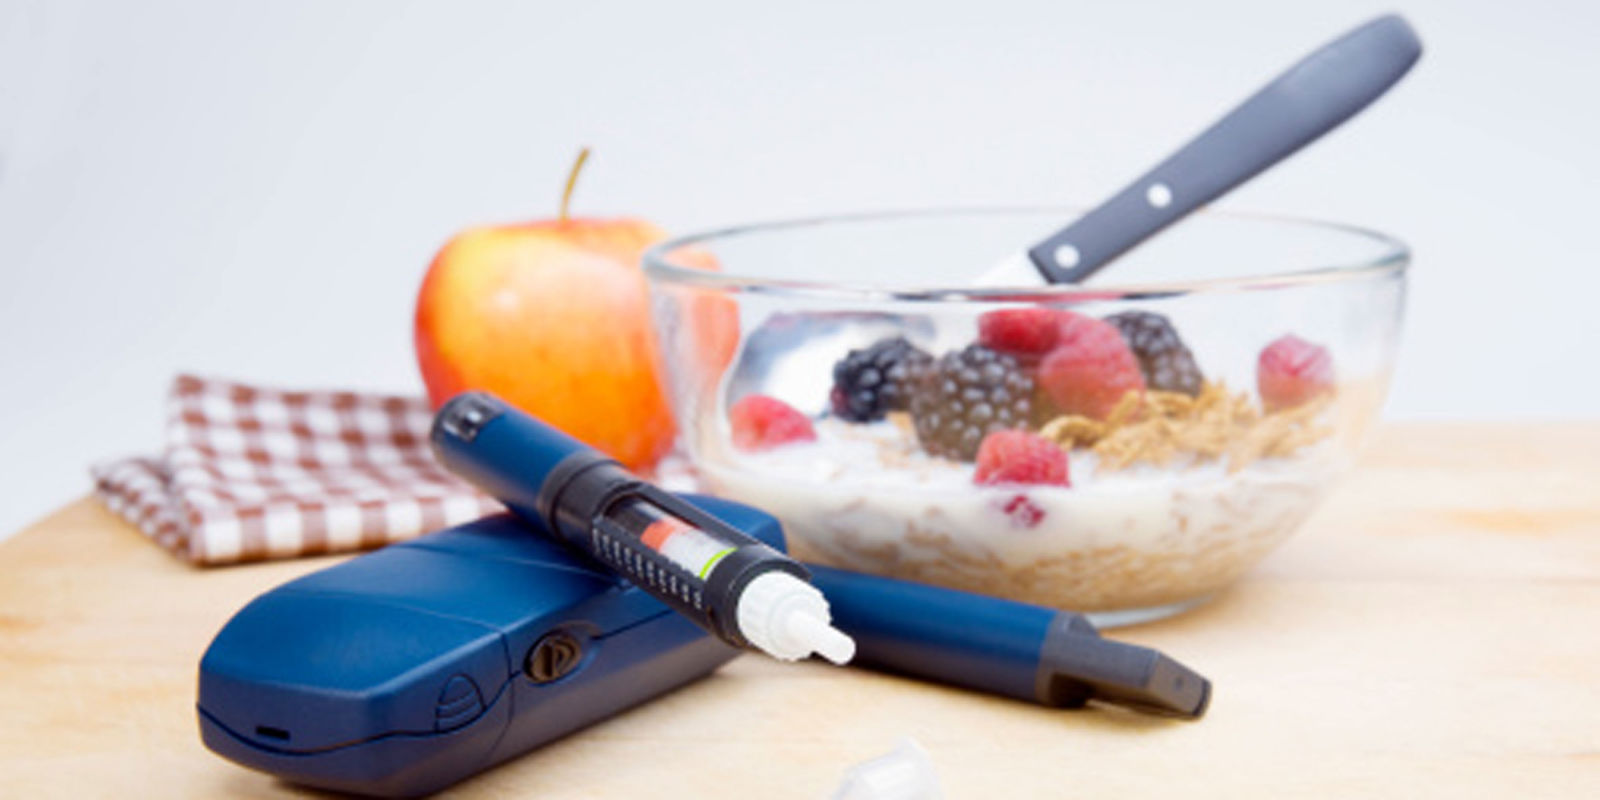 In type 2 diabetes why doesn't the body respond to insulin correctly?